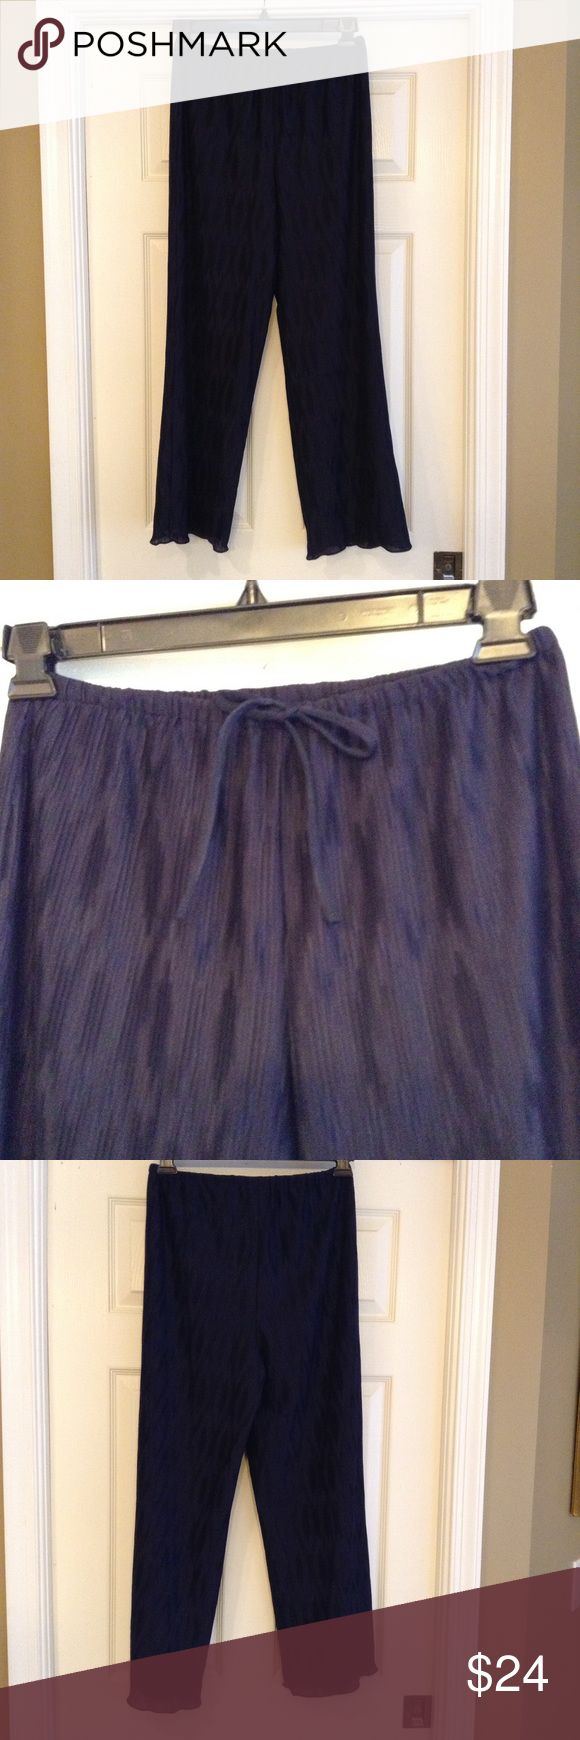 Drawstring Ballinger Gold Pants Navy Beautiful navy drawstring pants, fabric is sheer and gorgeous, fully lined, drawstring tie at waist. Ballinger Gold Pants